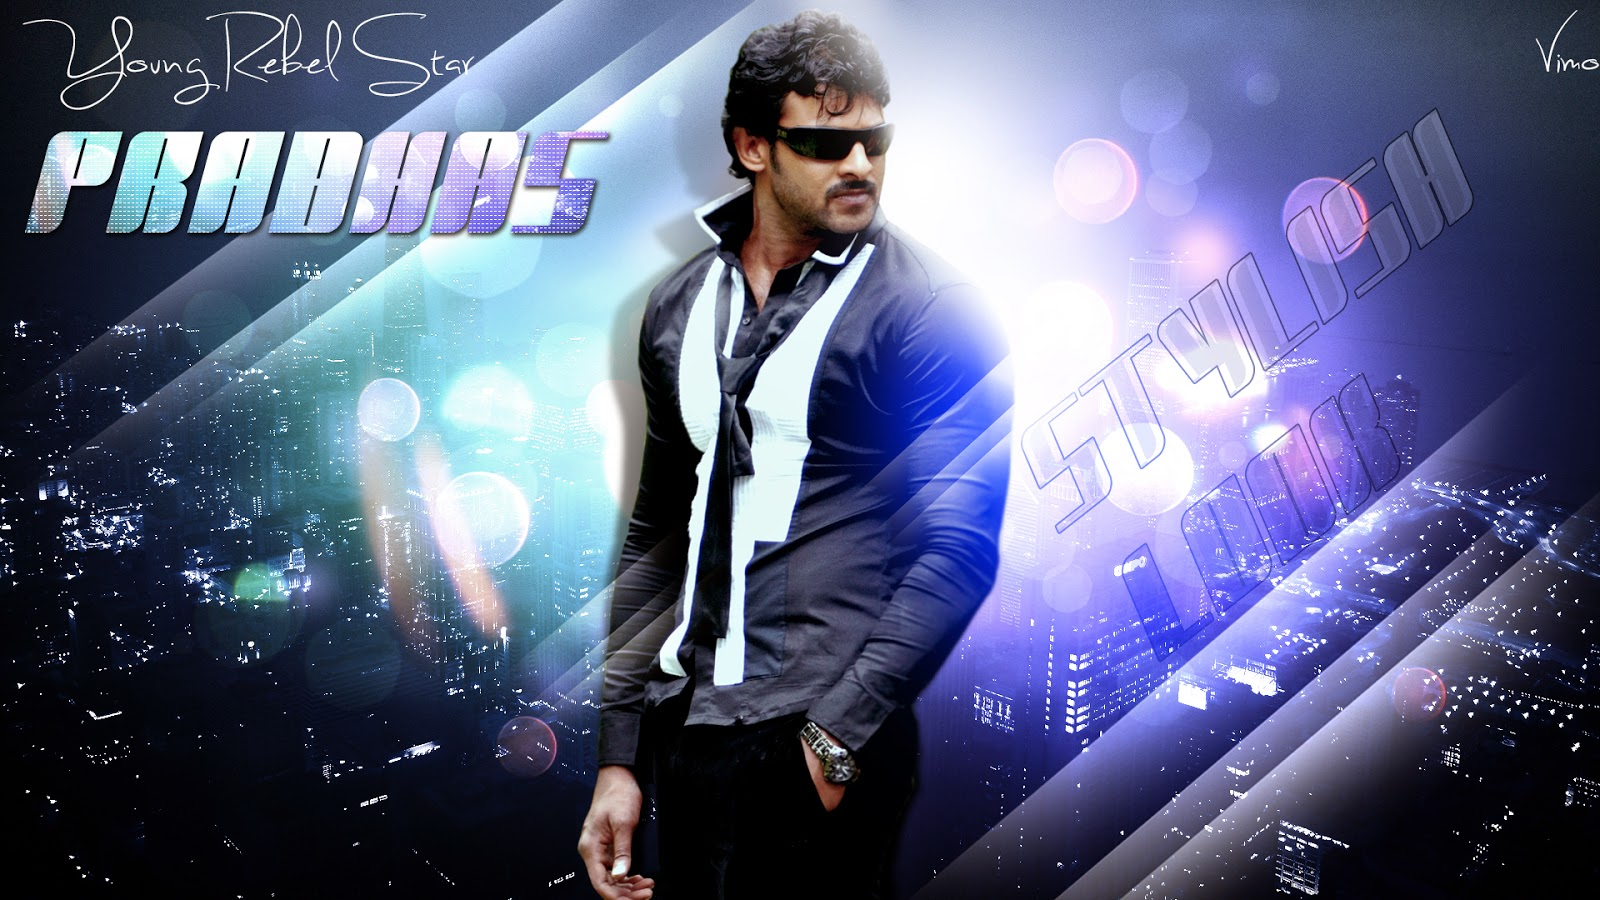 Prabhas Hd Wallpapers: Latest Wallpapers - HD Images 1080p